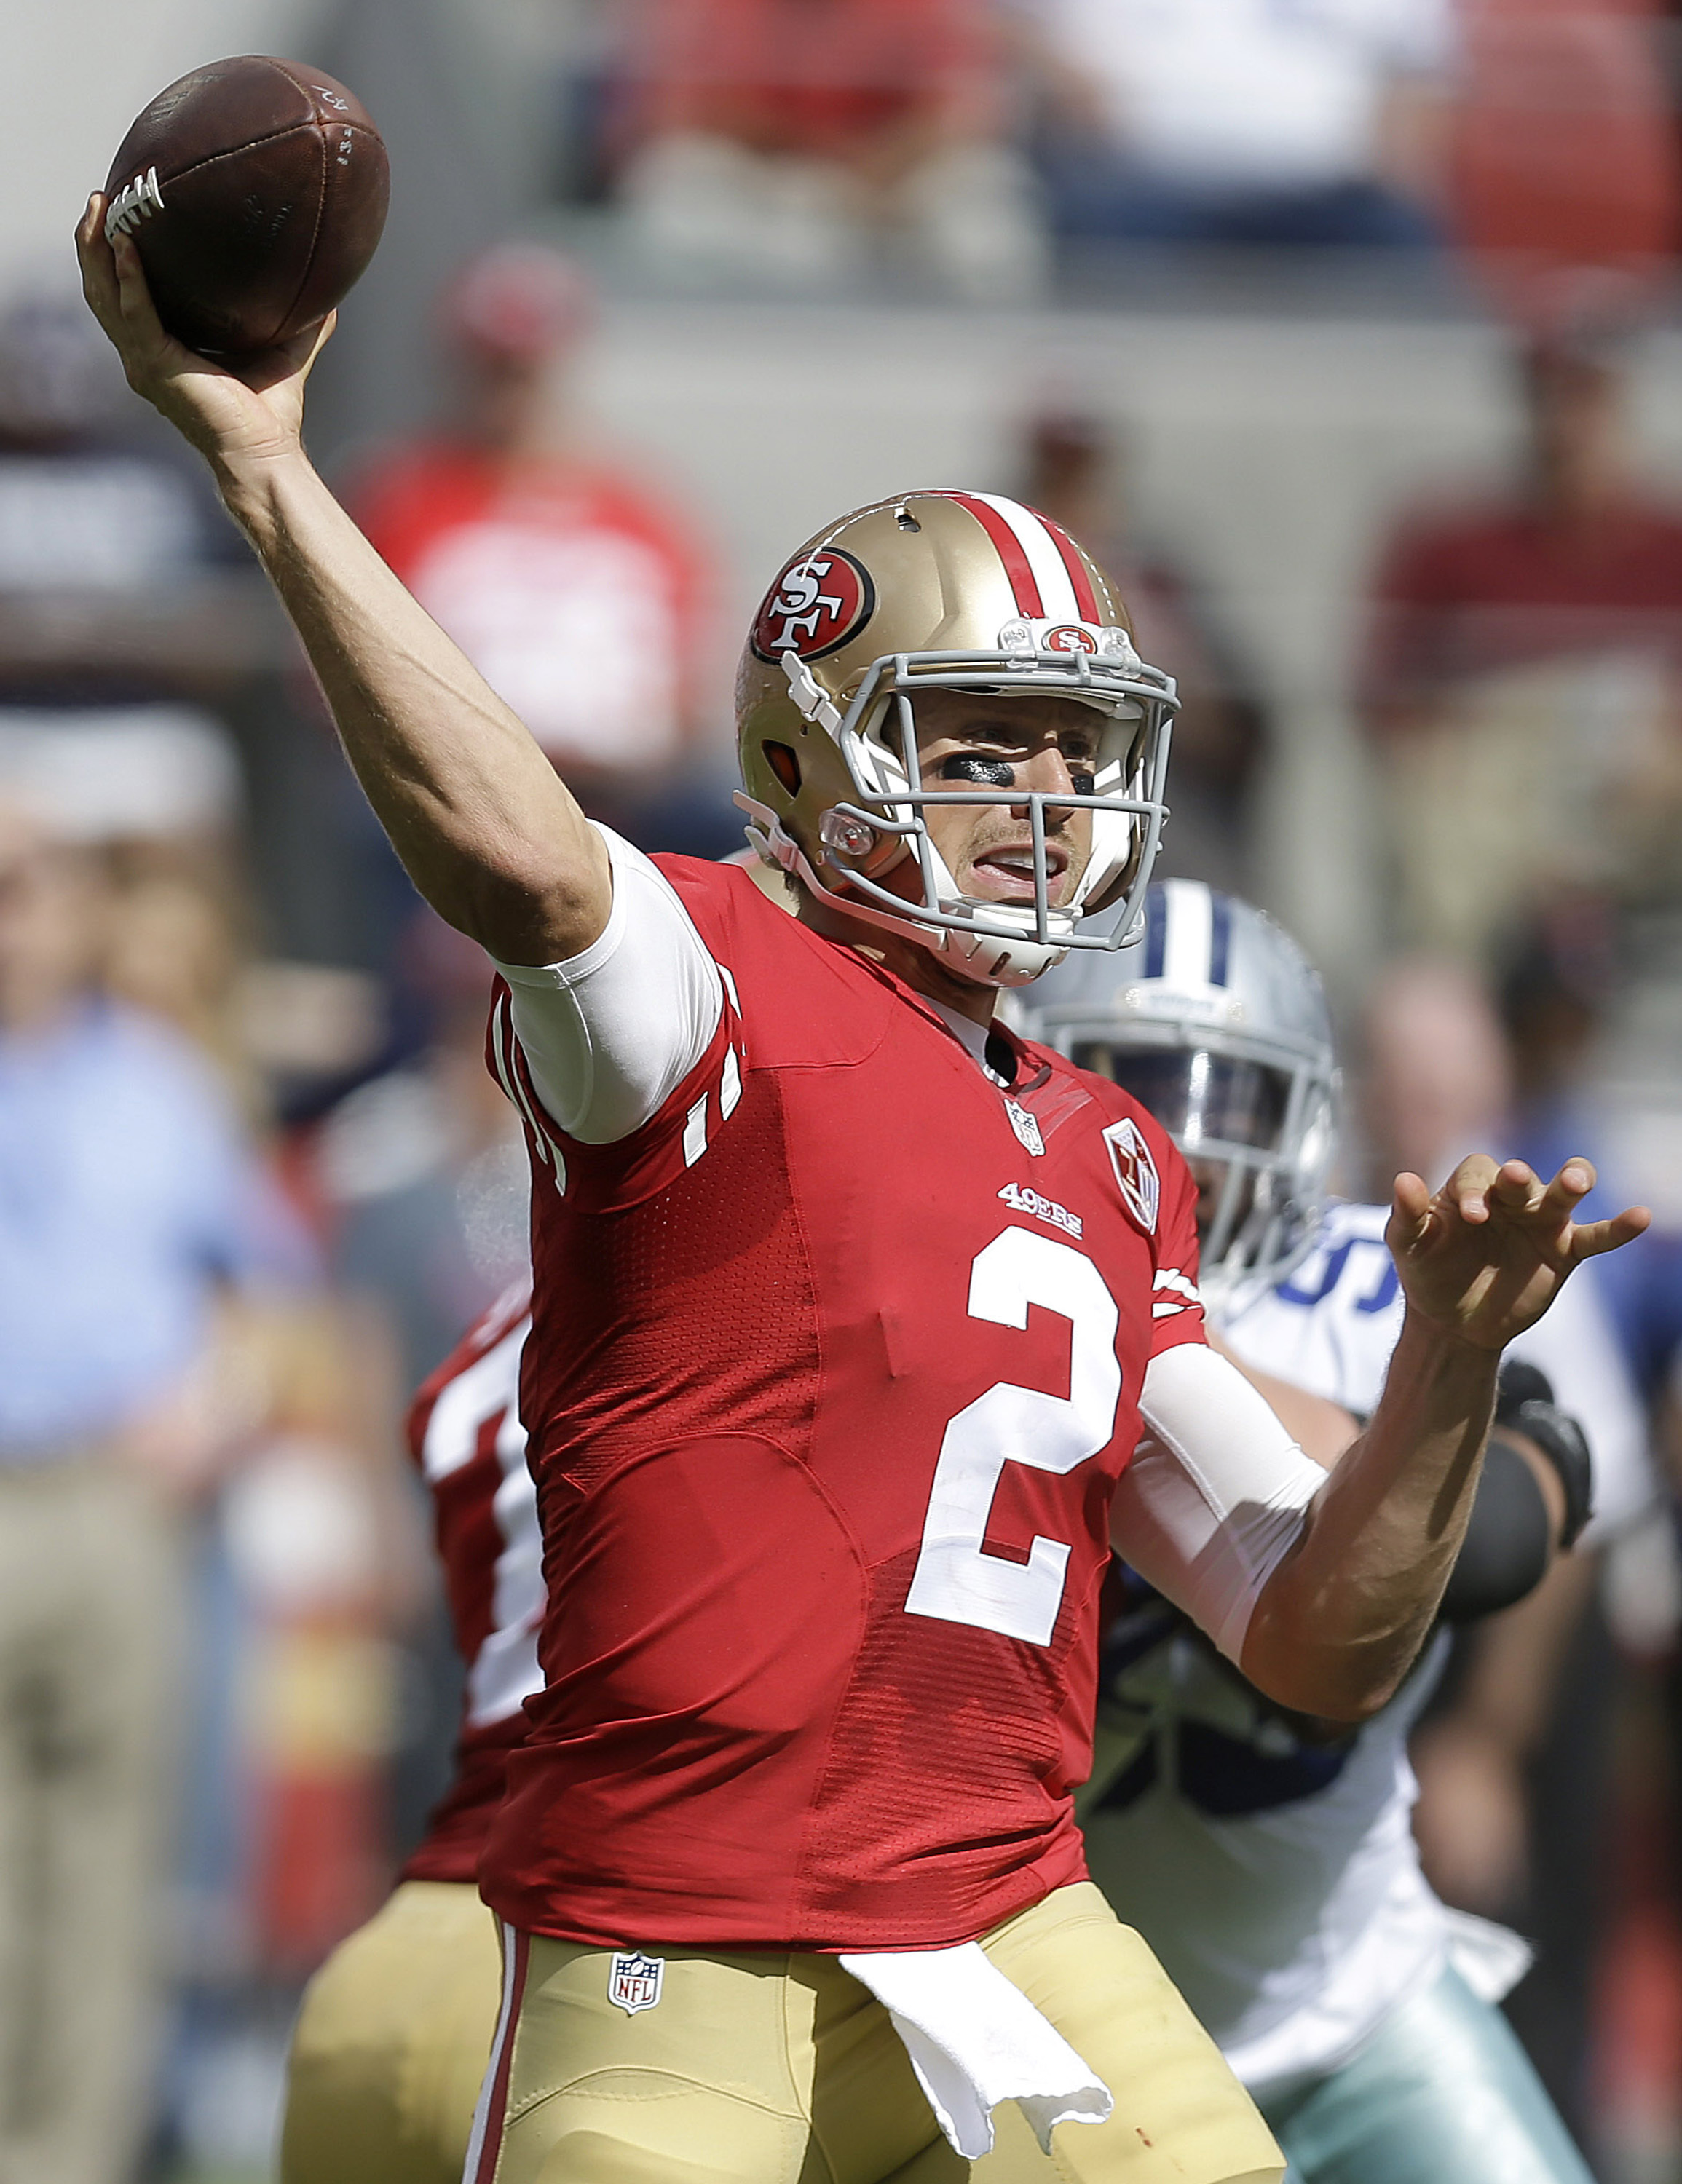 San Francisco 49ers quarterback Blaine Gabbert (2) passes against the Dallas Cowboys during the first half of an NFL football game in Santa Clara, Calif., Sunday, Oct. 2, 2016. (AP Photo/Ben Margot)